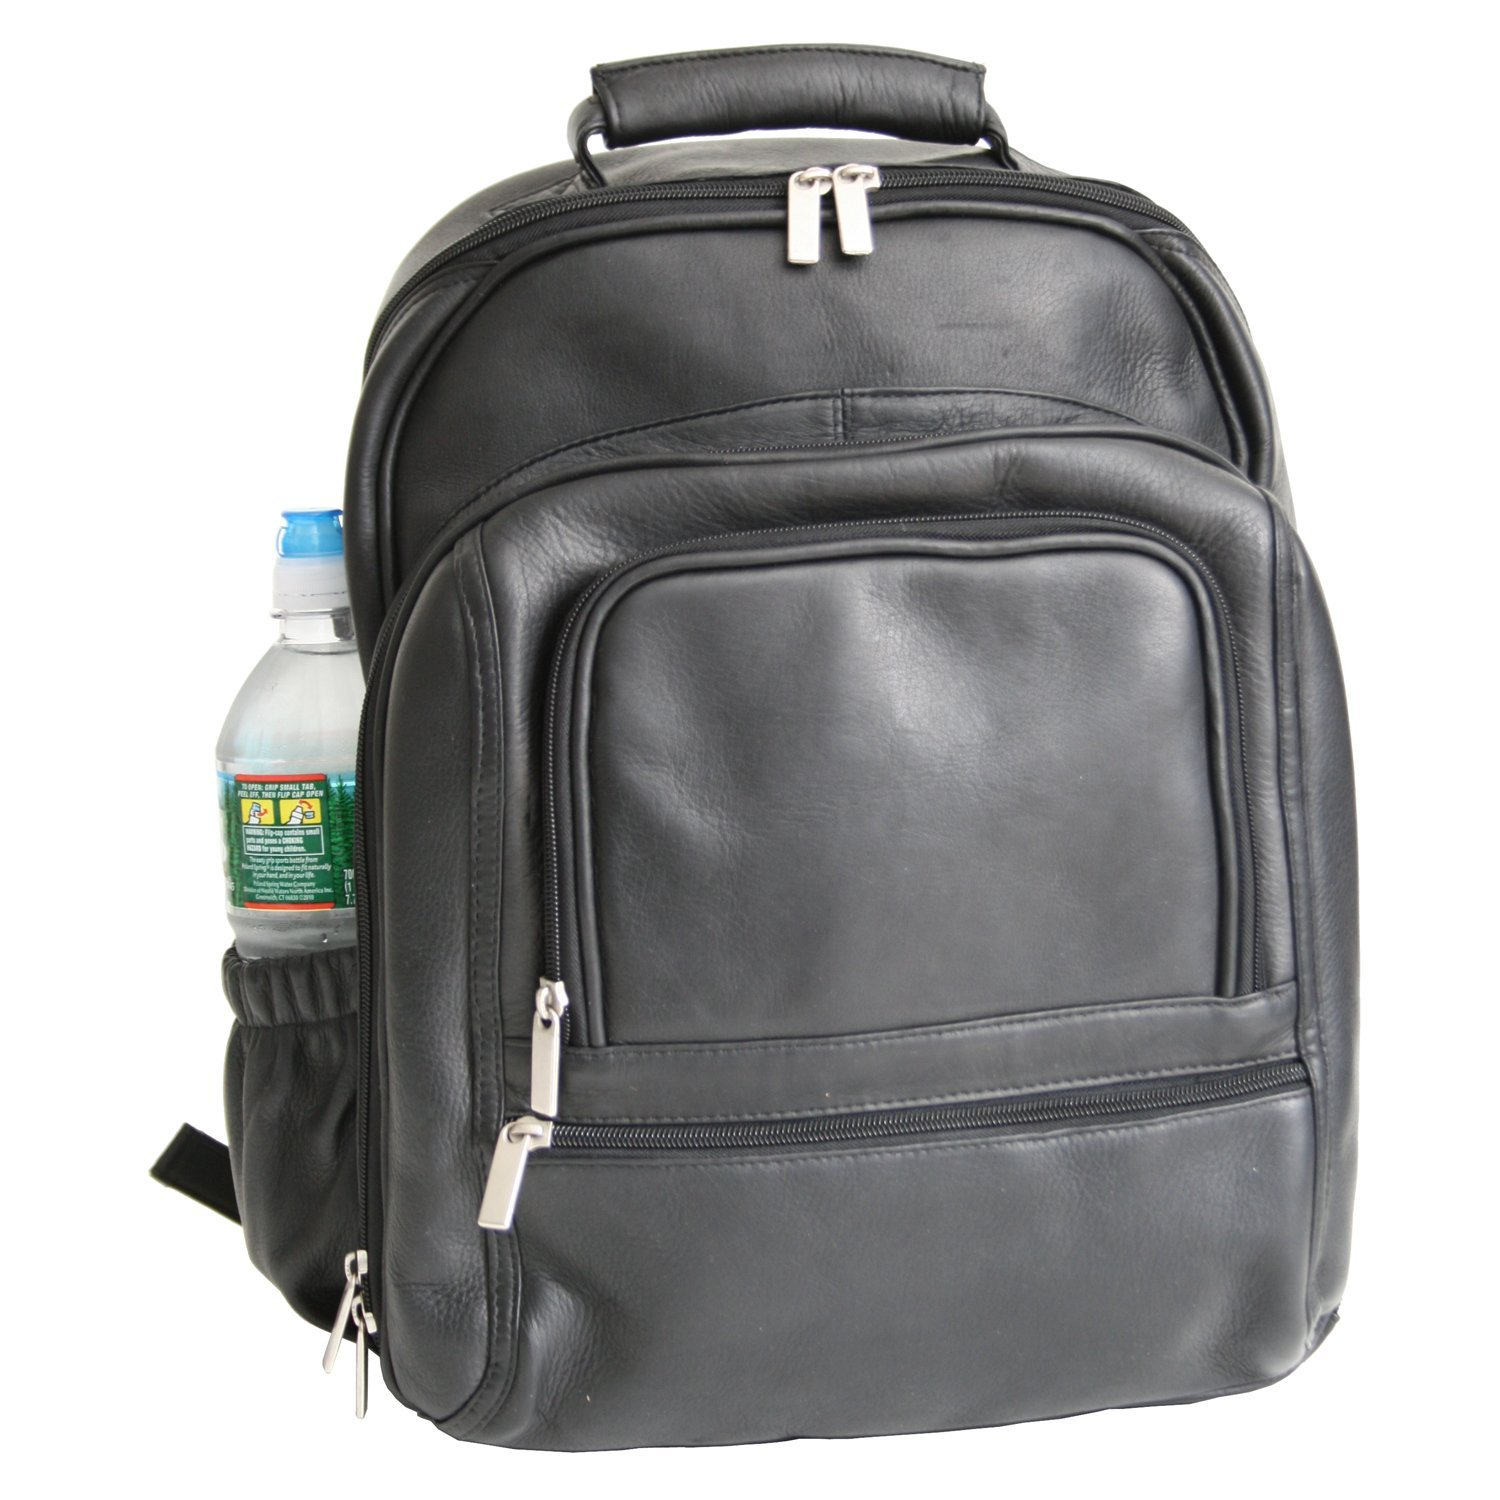 Royce Leather Executive 15'' Laptop Backpack Bag Handcrafted In Colombian Genuine Leather Laptop Backpack, Black by Royce Leather (Image #1)